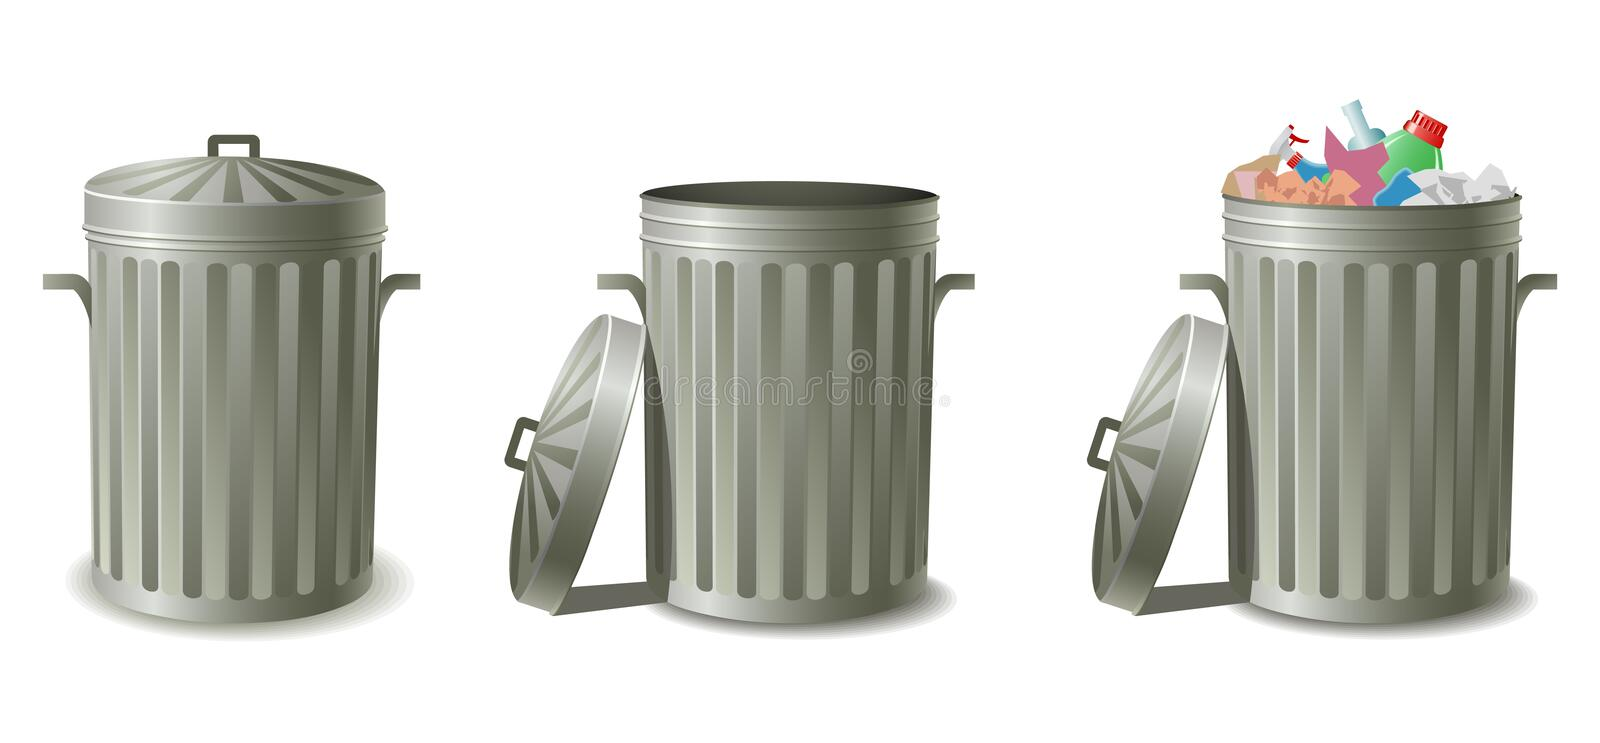 Garbage cans royalty free illustration